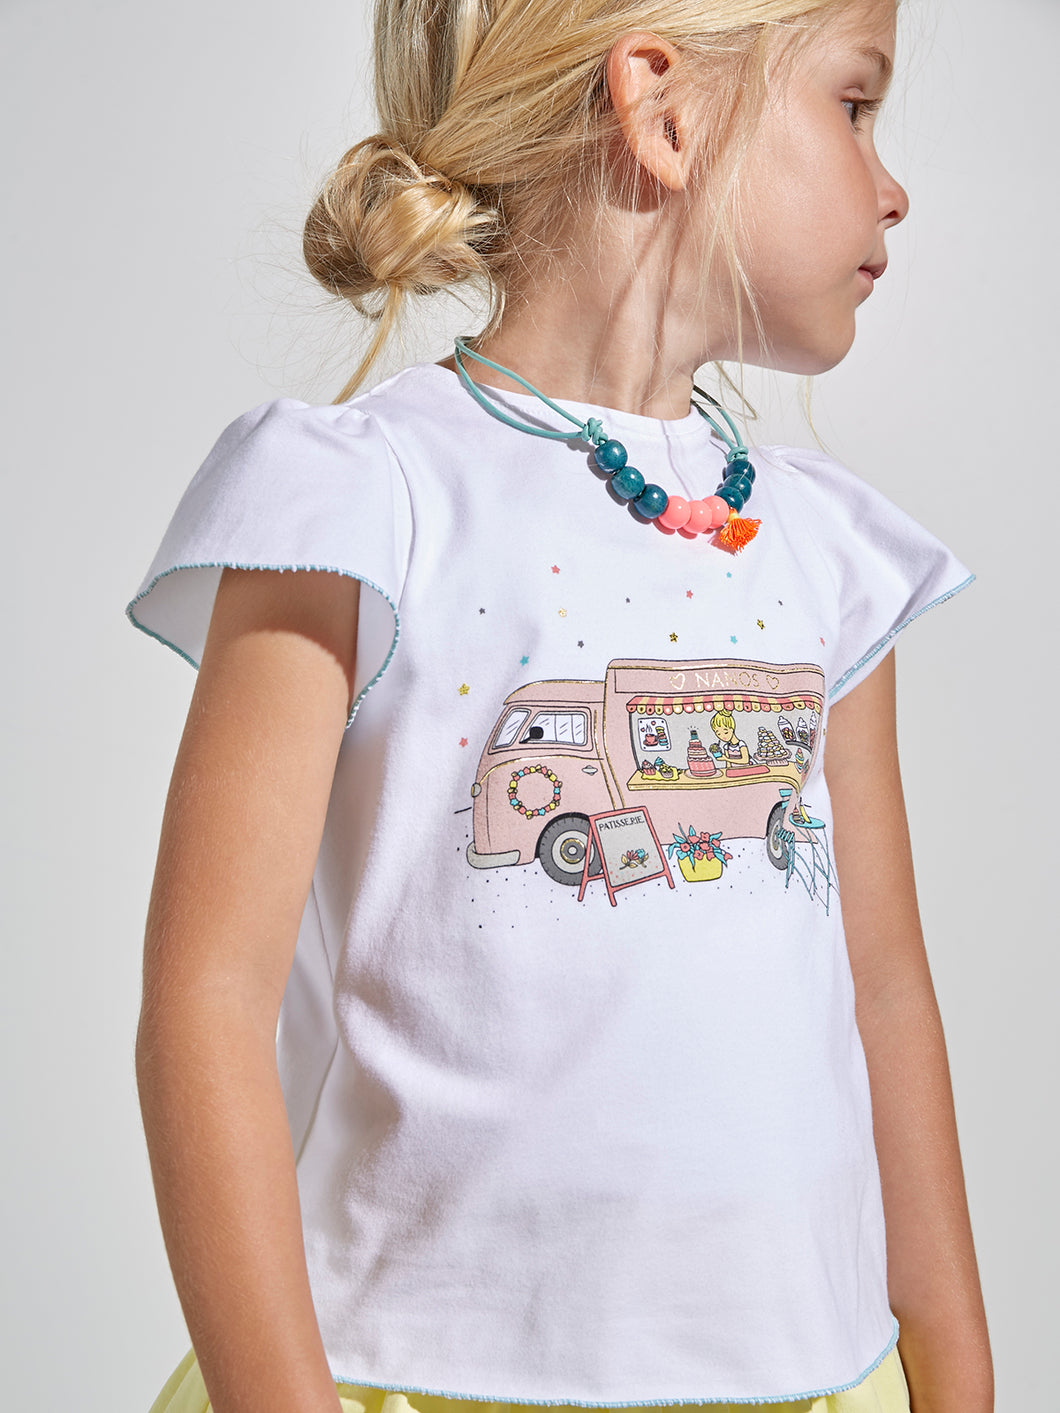 GIRLS T-SHIRT WITH FOODCART PRINT